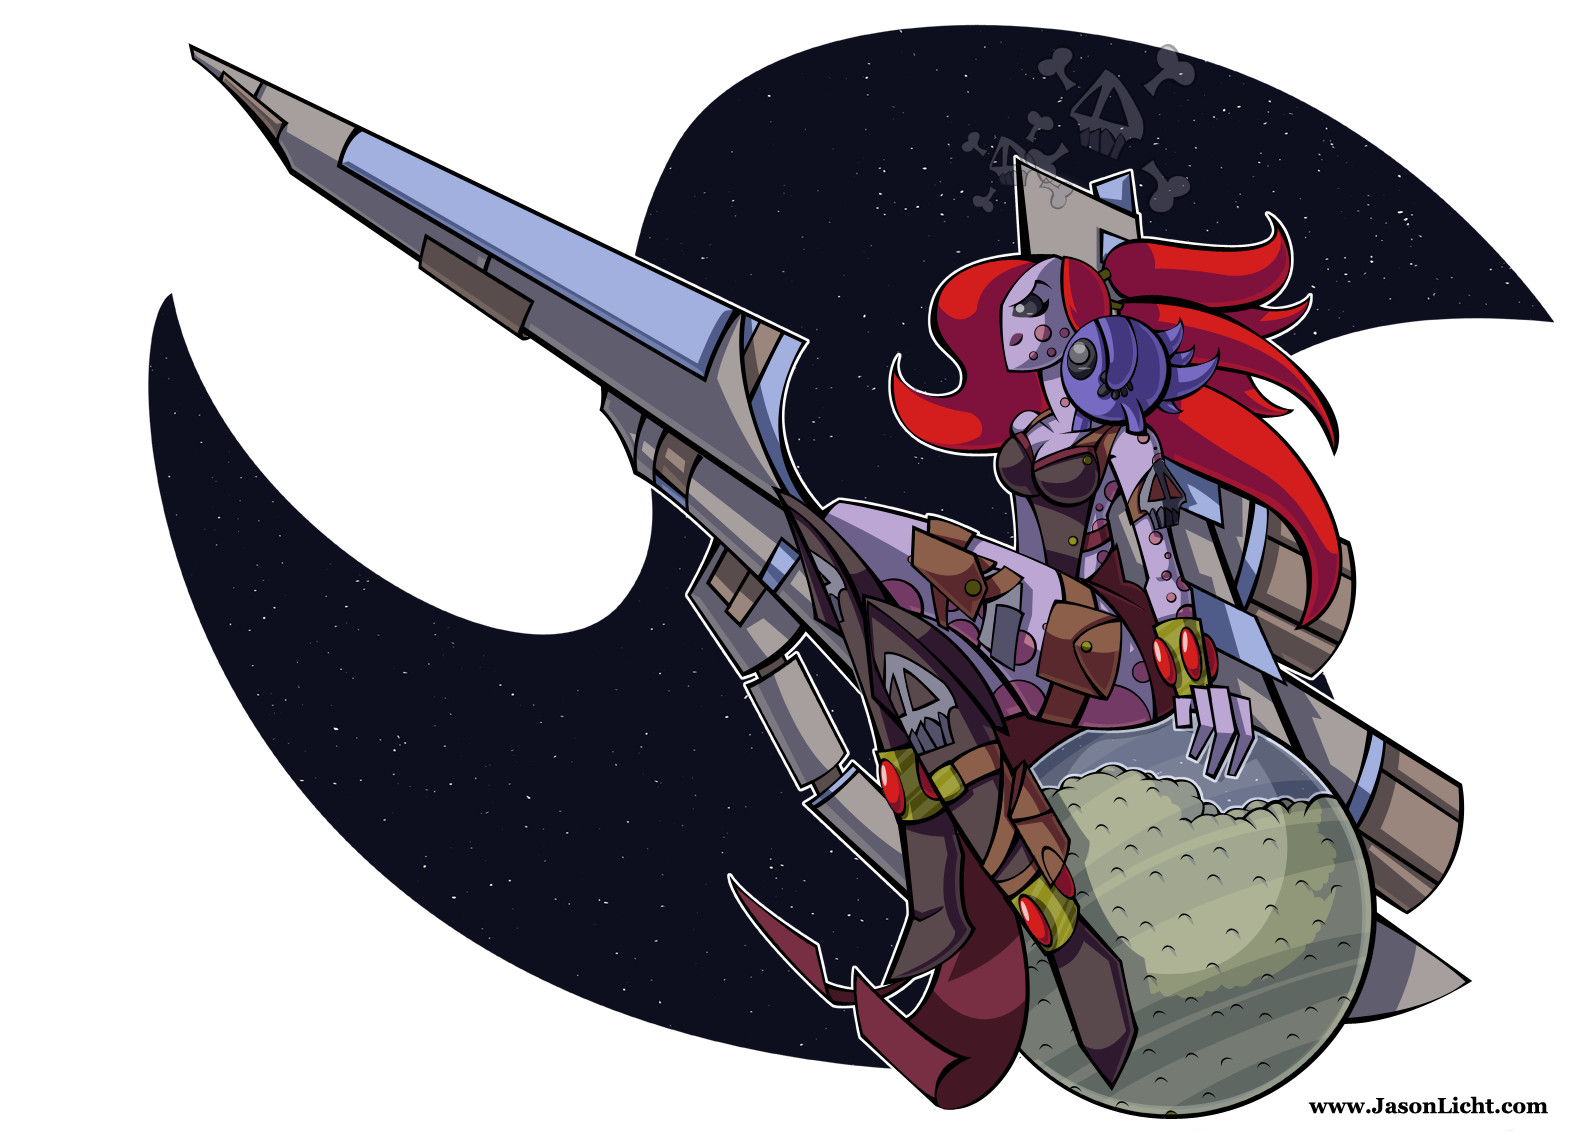 Space Pirate for a Character Design Challenge